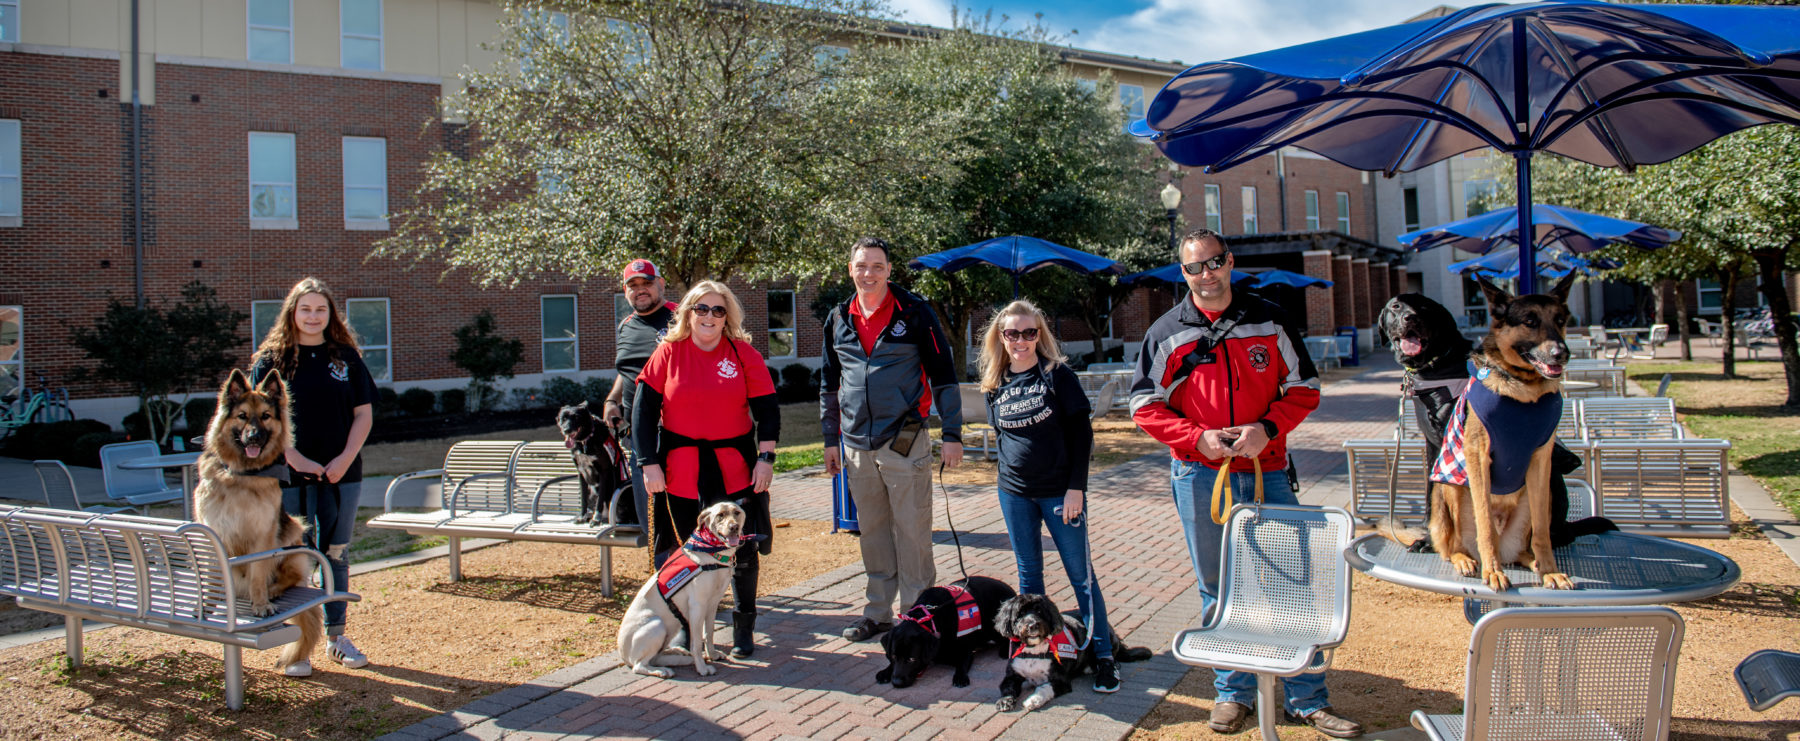 Members of the Go Team therapy dog group visited the A&M-Commerce campus last month